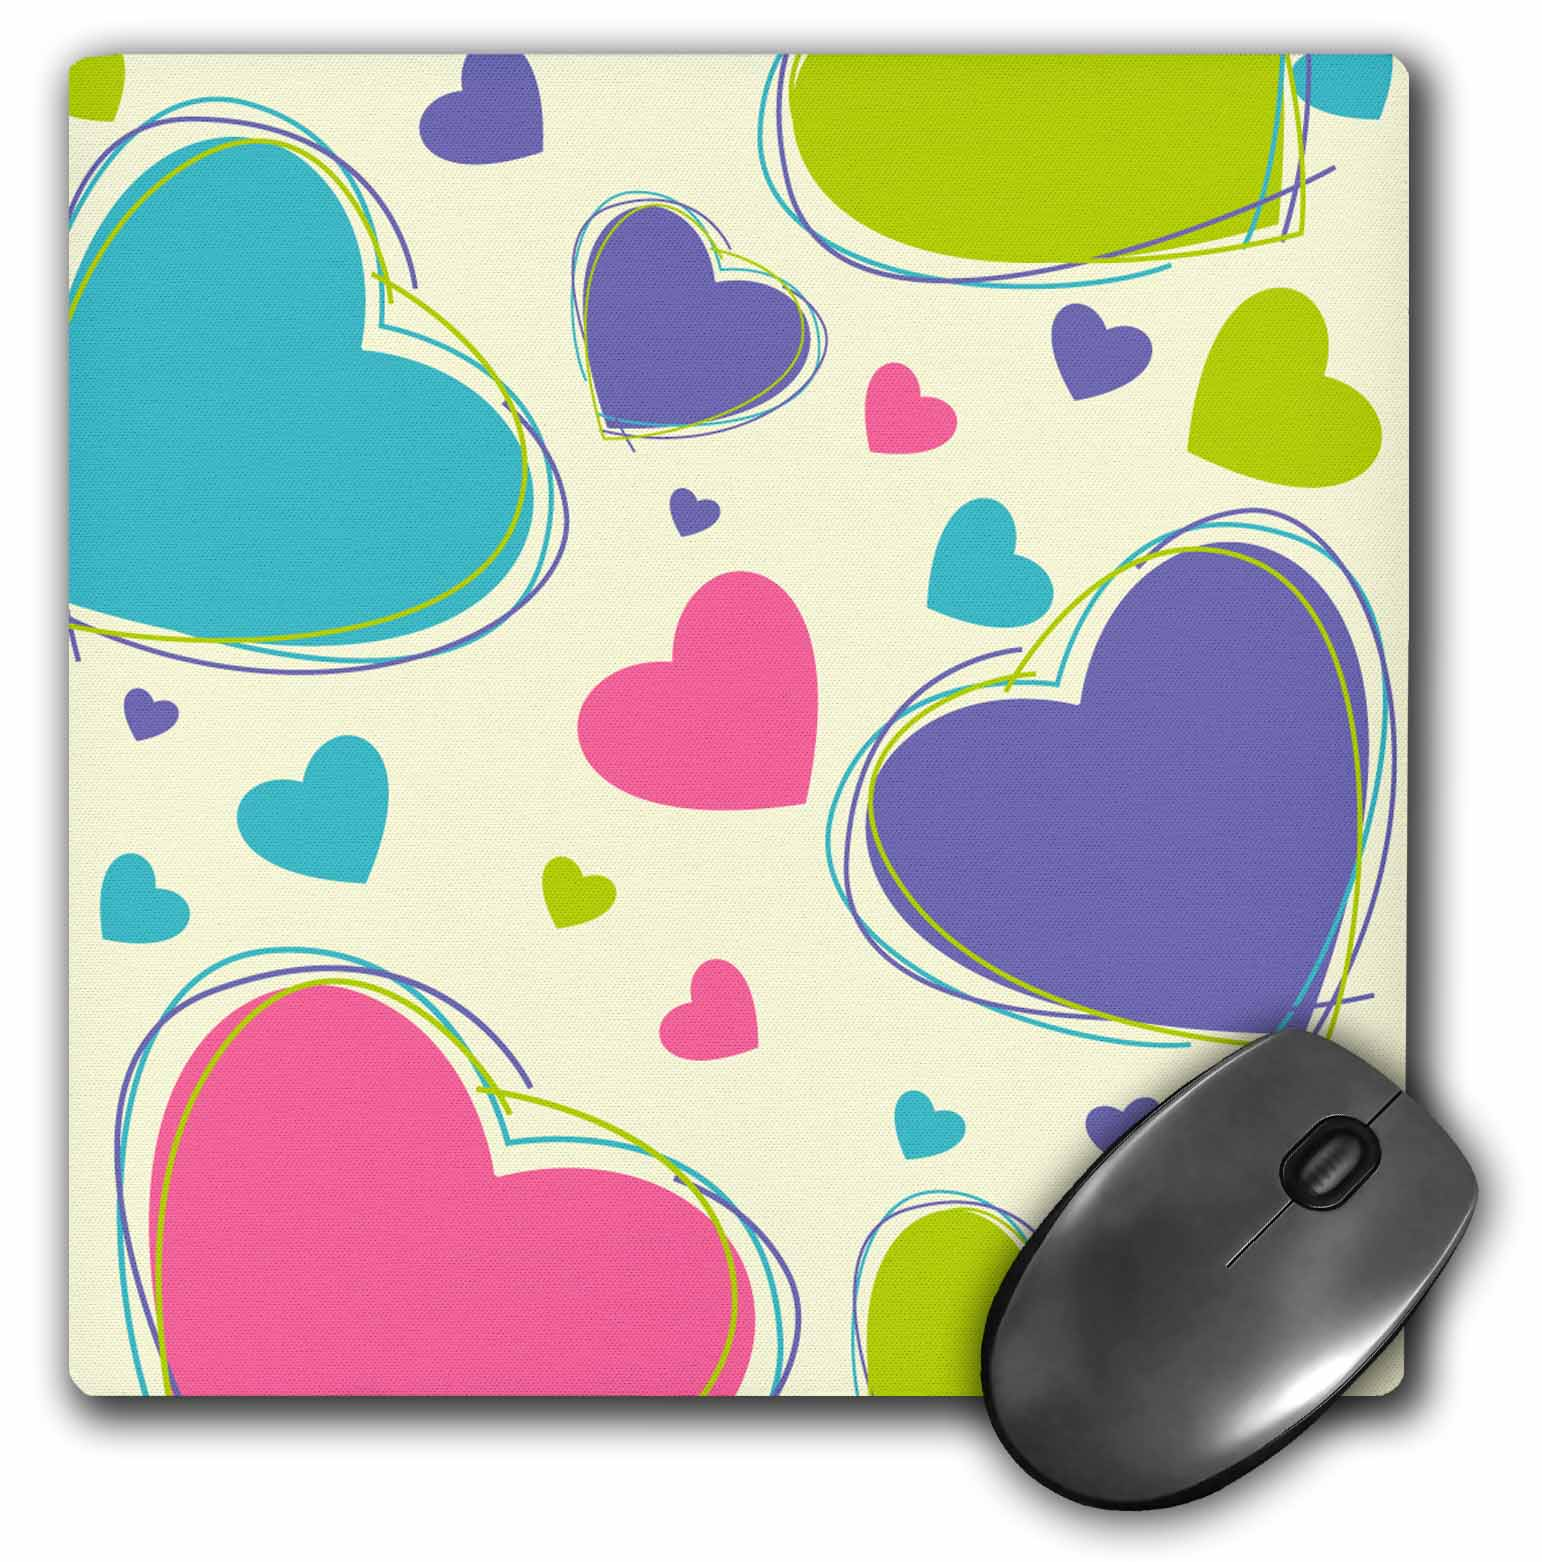 3dRose Purple, Turquoise, Pink Large and Small Scattered Hearts, Mouse Pad, 8 by 8 inches